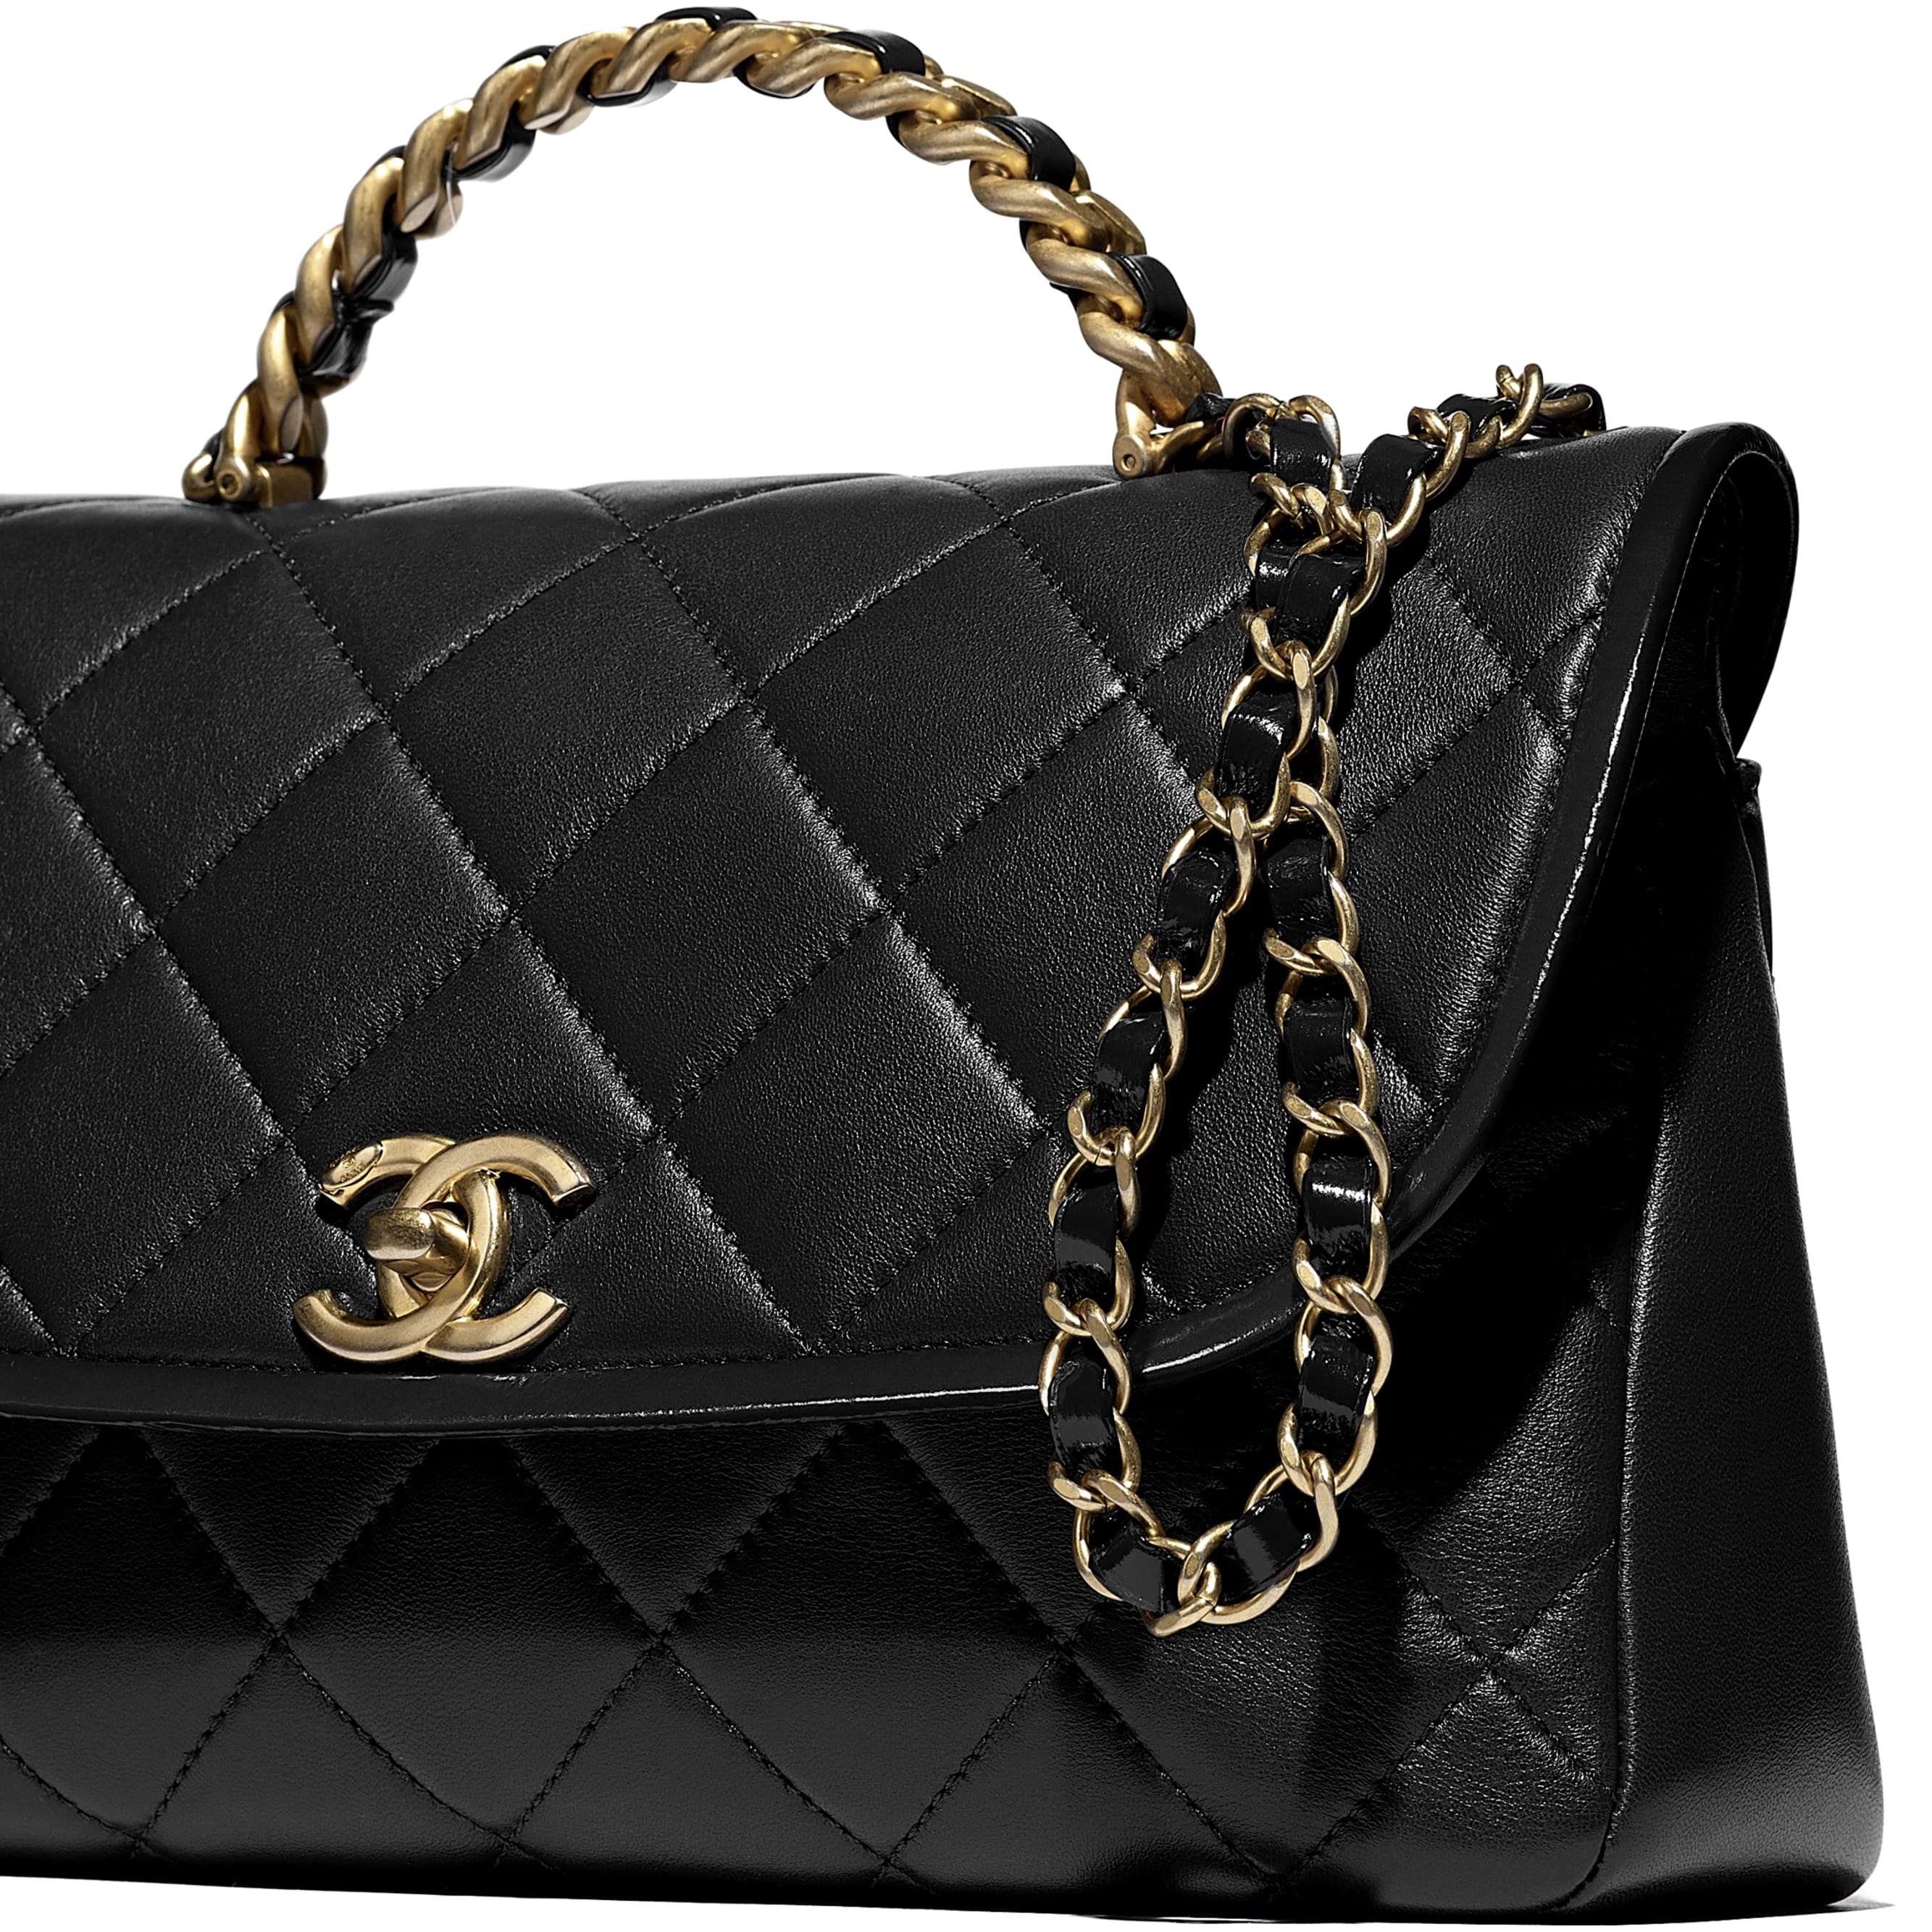 Large Flap Bag With Top Handle - Black - Lambskin, Shiny Crumpled Calfskin & Gold-Tone Metal - CHANEL - Extra view - see standard sized version